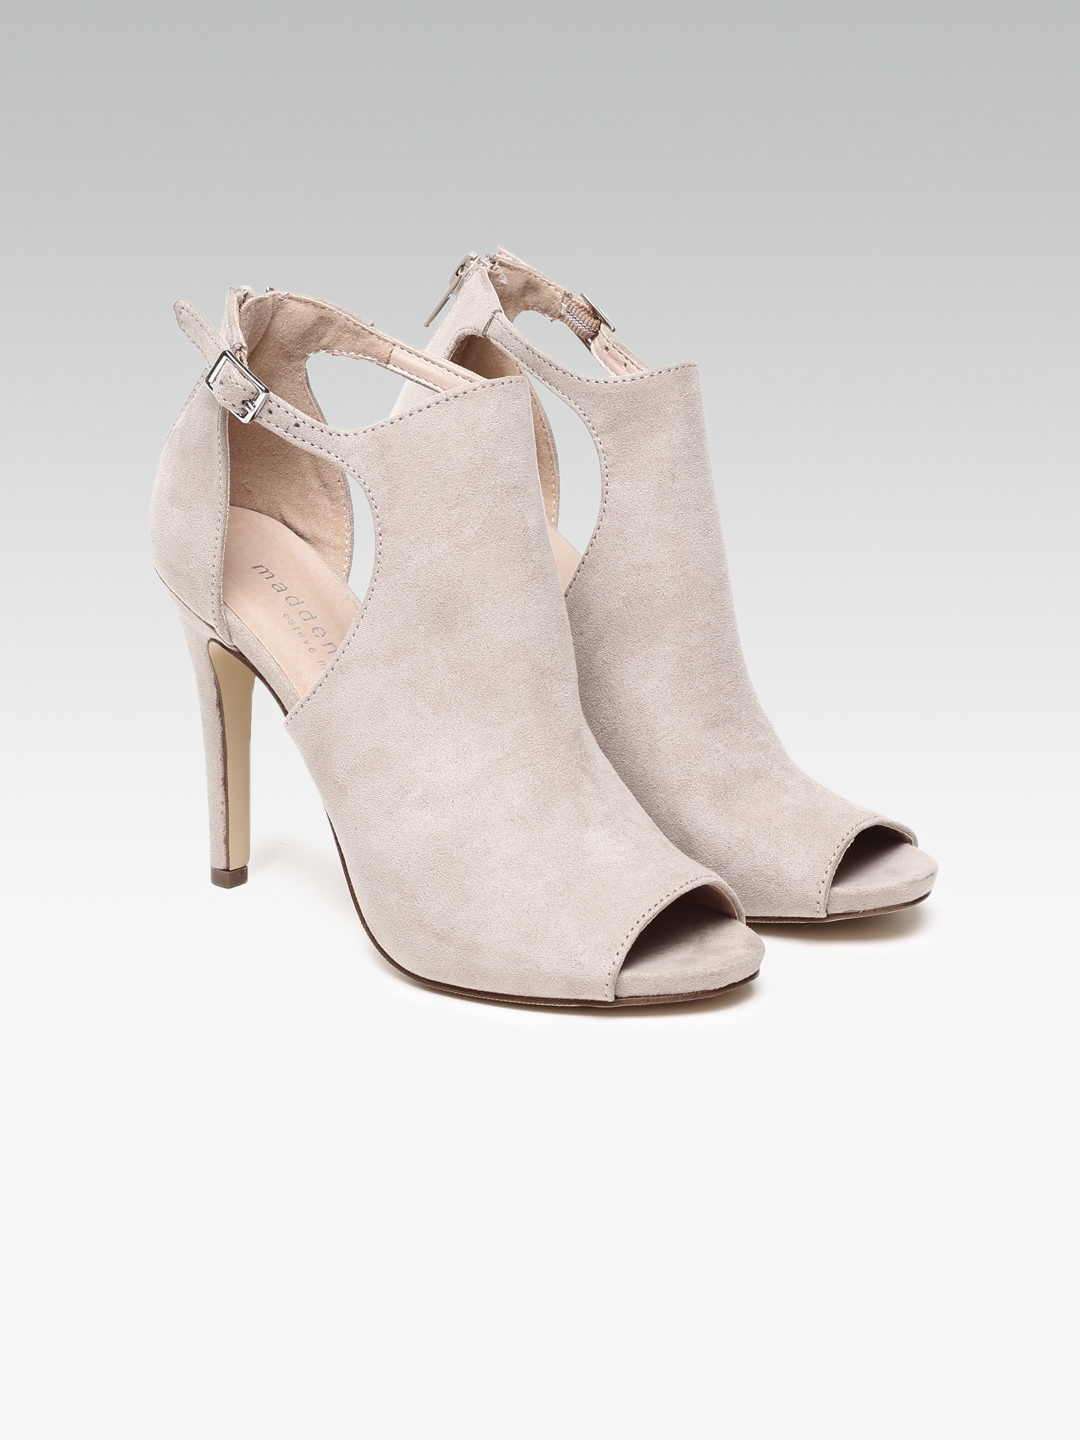 61748fa9dc7 Steve Madden Baebae Beige Stilettos for women - Get stylish shoes ...